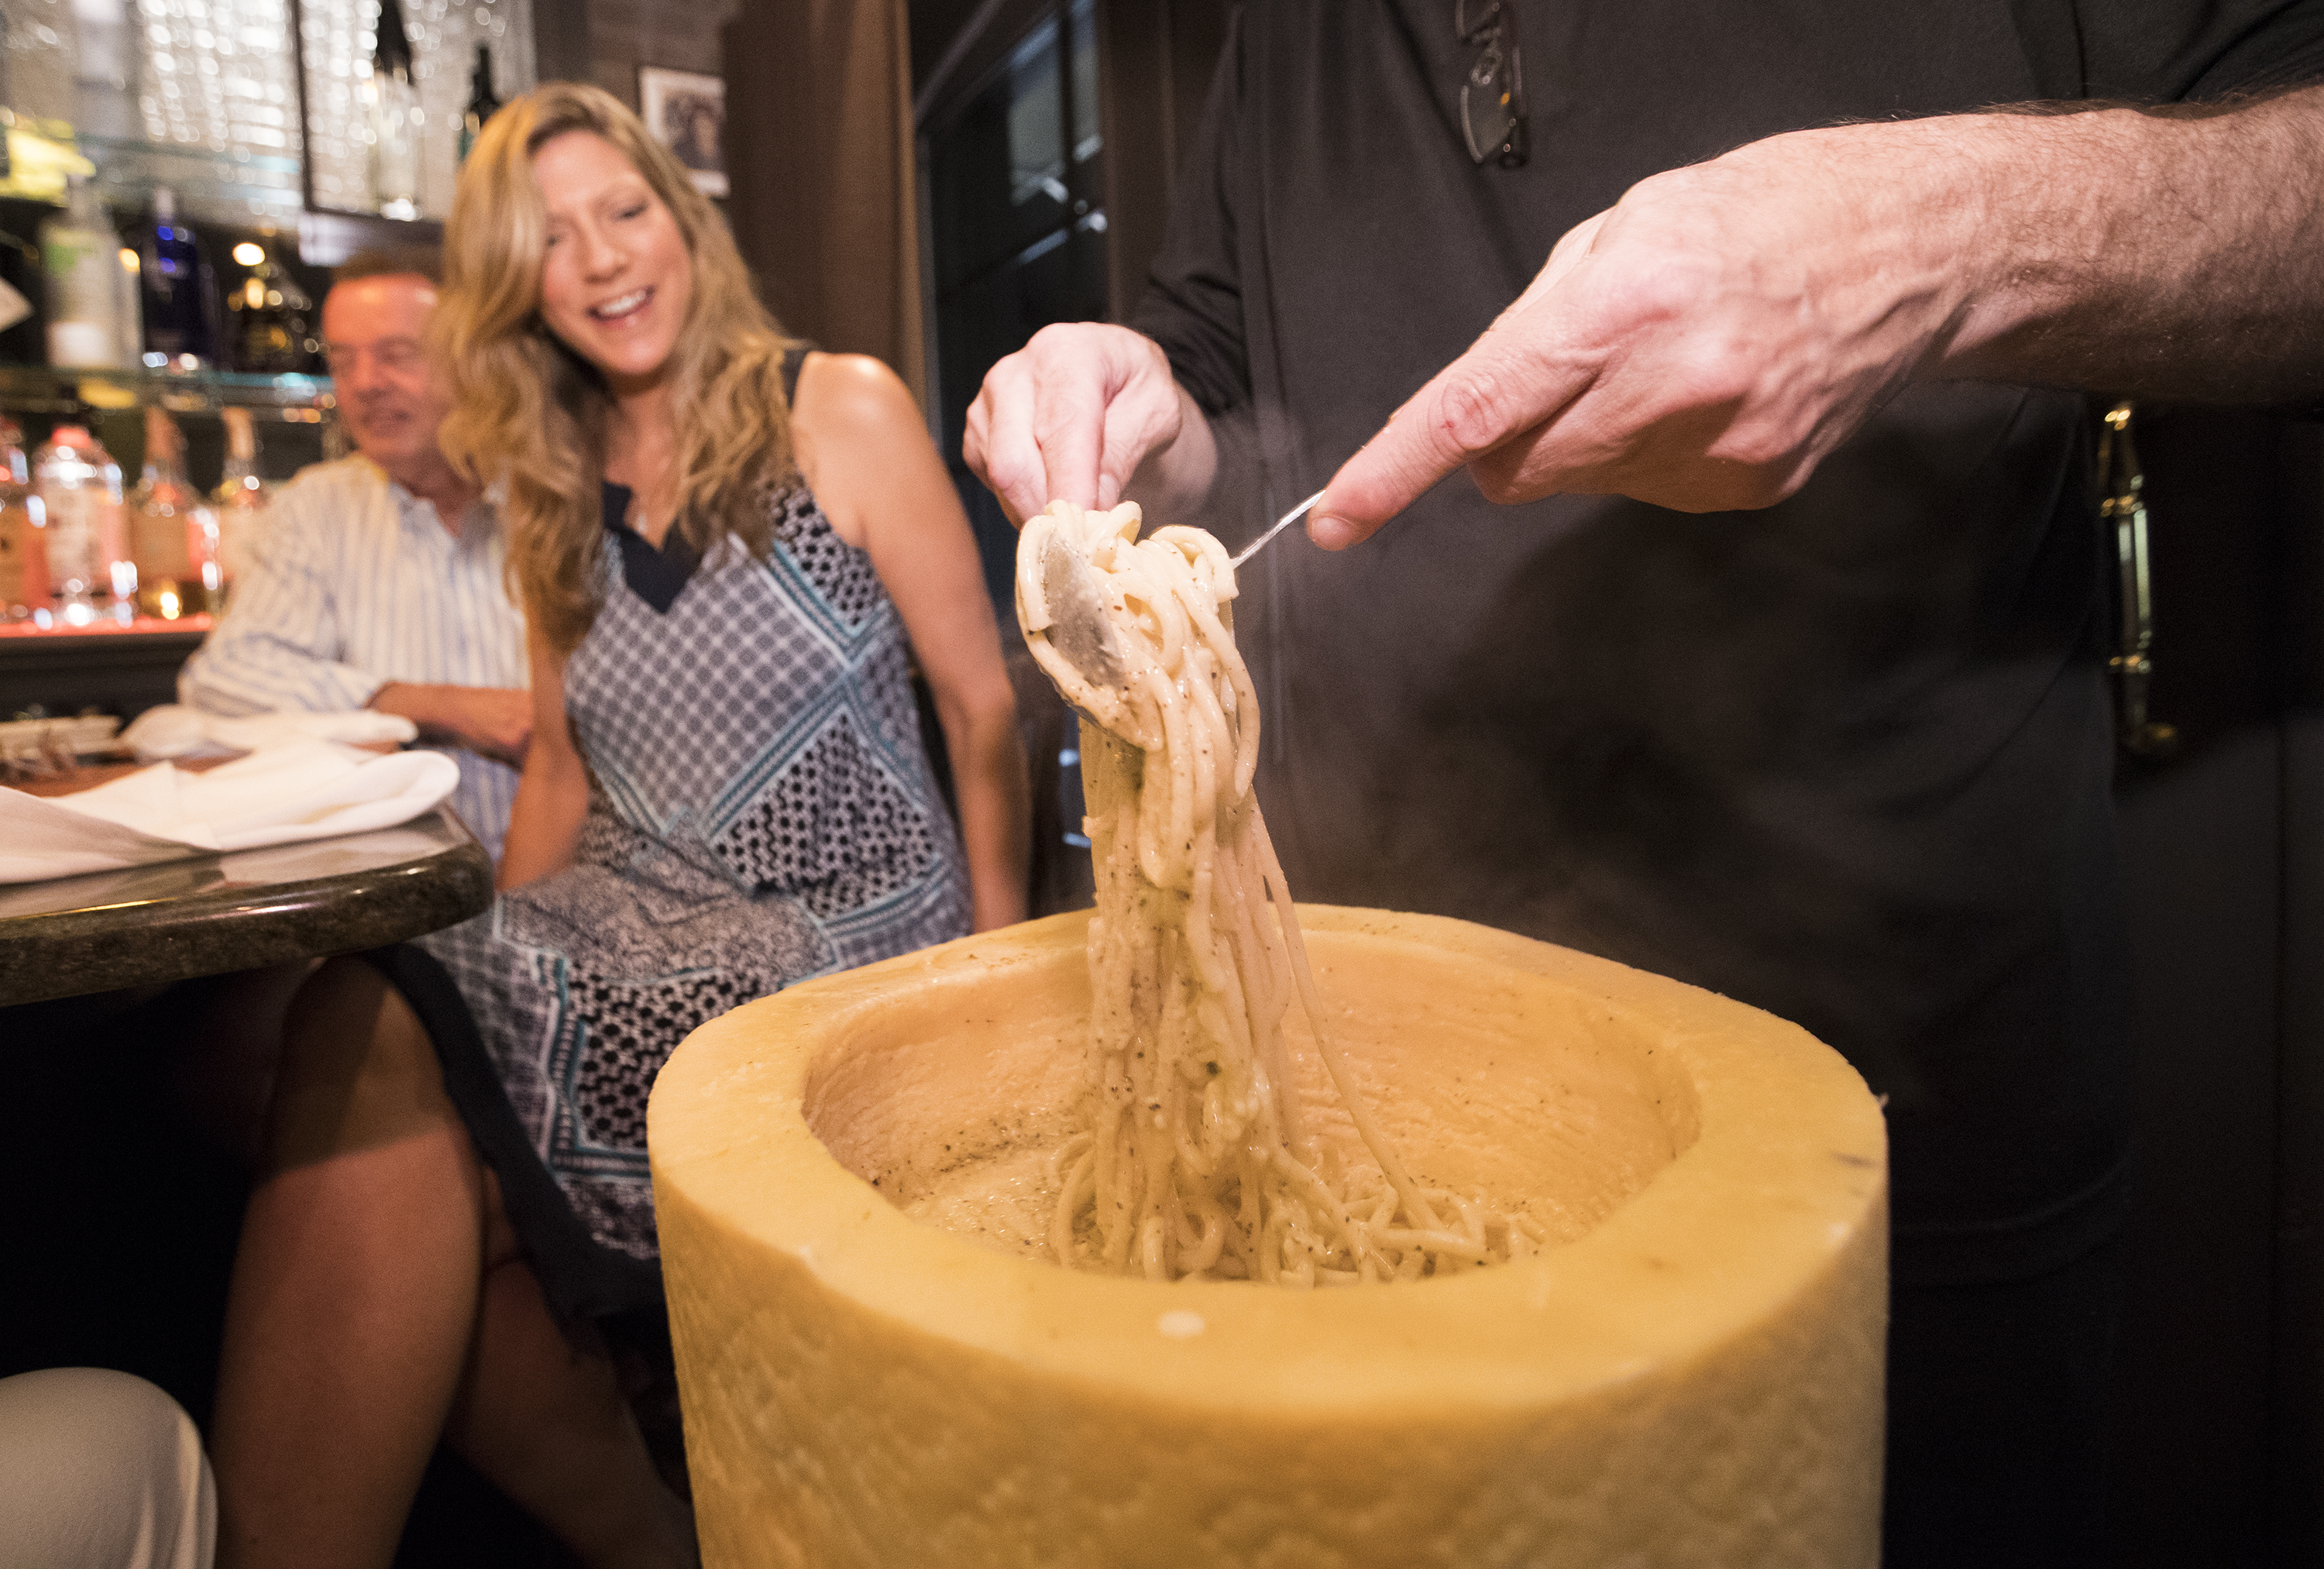 Freshly prepared pasta is gently tossed into a wheel of Pecorino to make cacio e pepe at Cafe 2825 in Atlantic City.